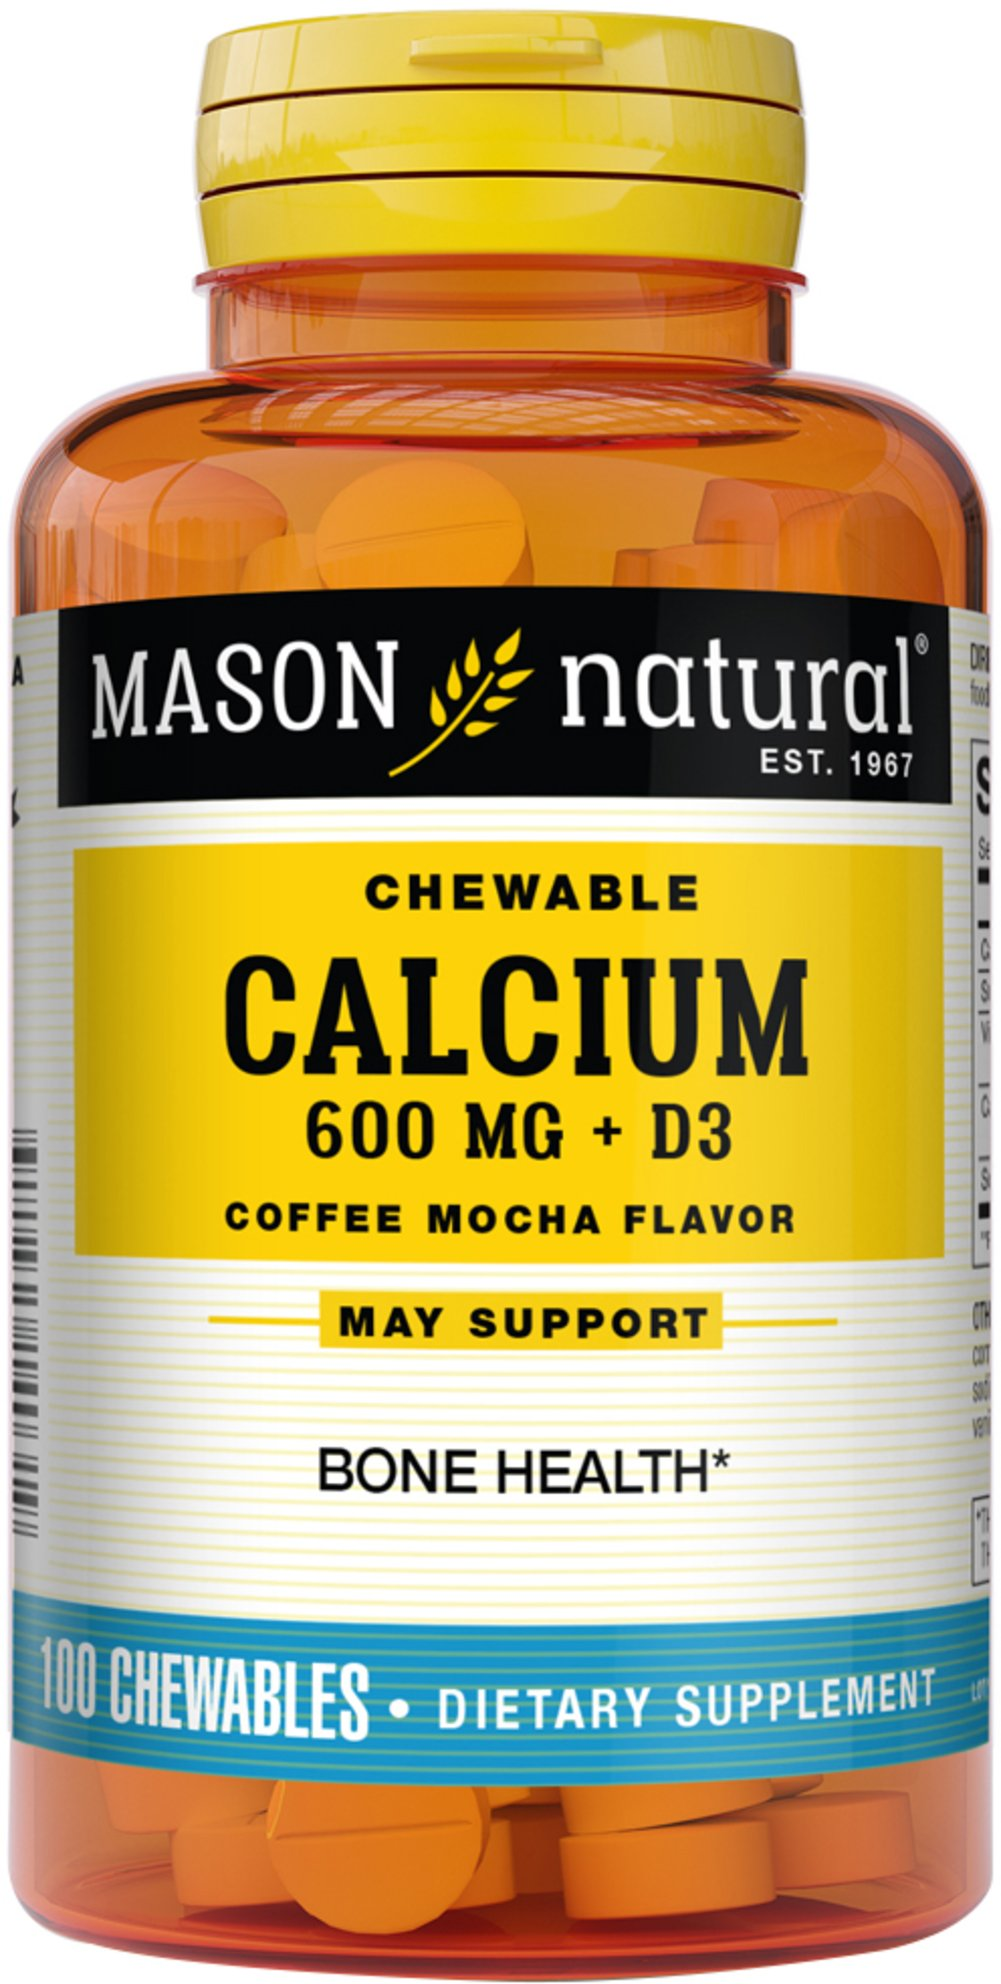 Chewable Calcium 600 plus D3 <strong></strong><p><strong>From the manufacturer's label:</strong></p><p>Mason Chewable Super Calcium contains  600mg of Calcium and  +  400iu of Vitamin D3.</p><p>Coffee Mocha Flavor.</p> 100 Chewables 600 mg/400 IU $4.99